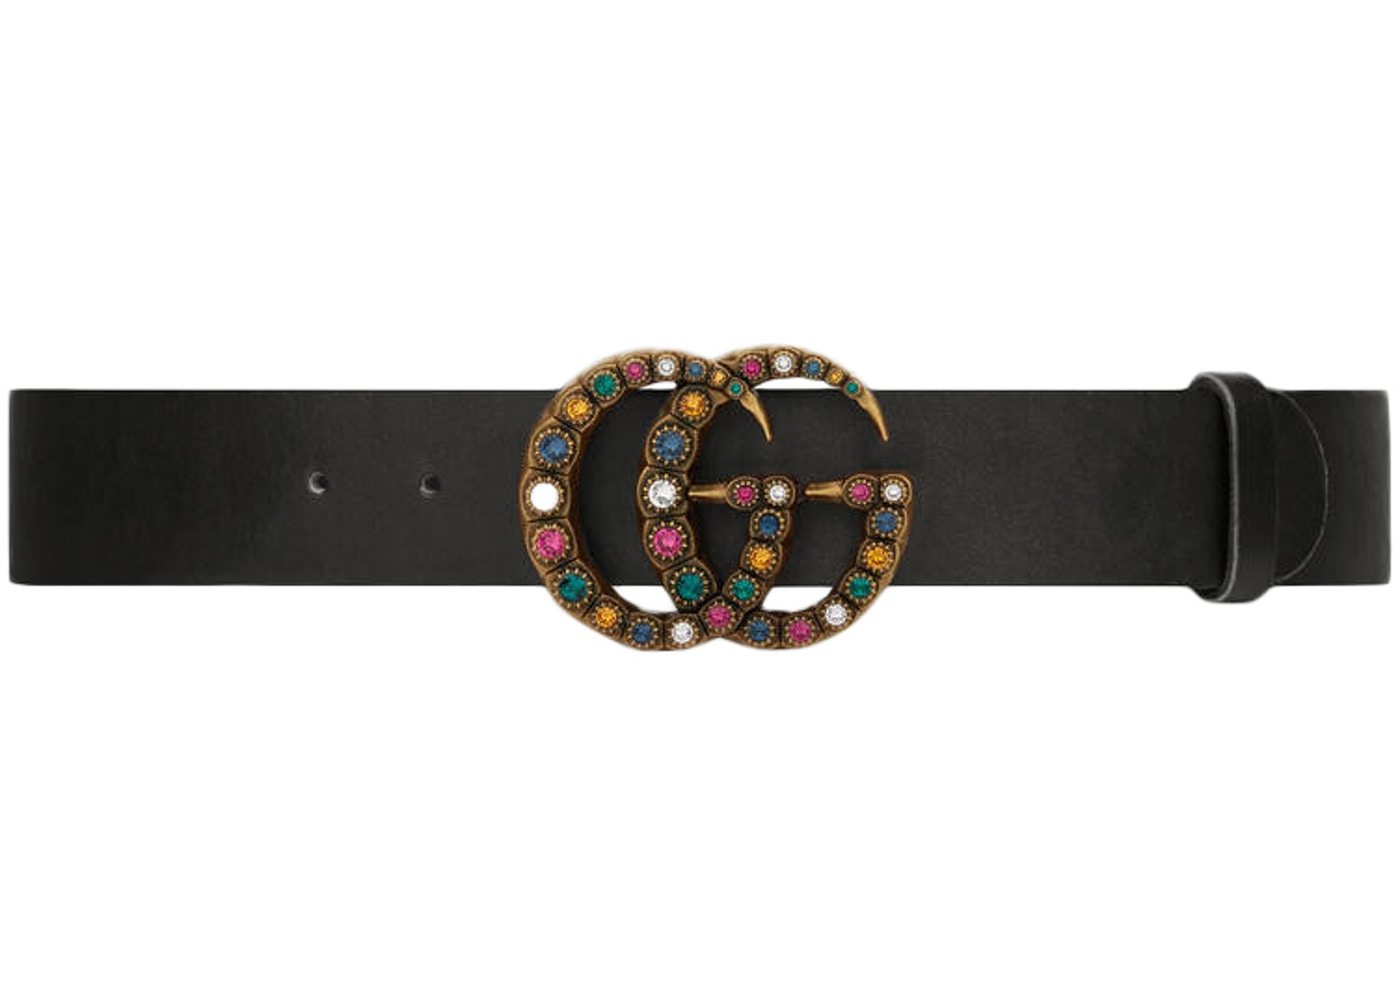 Gucci GG Crystal Belt 65-26 Black